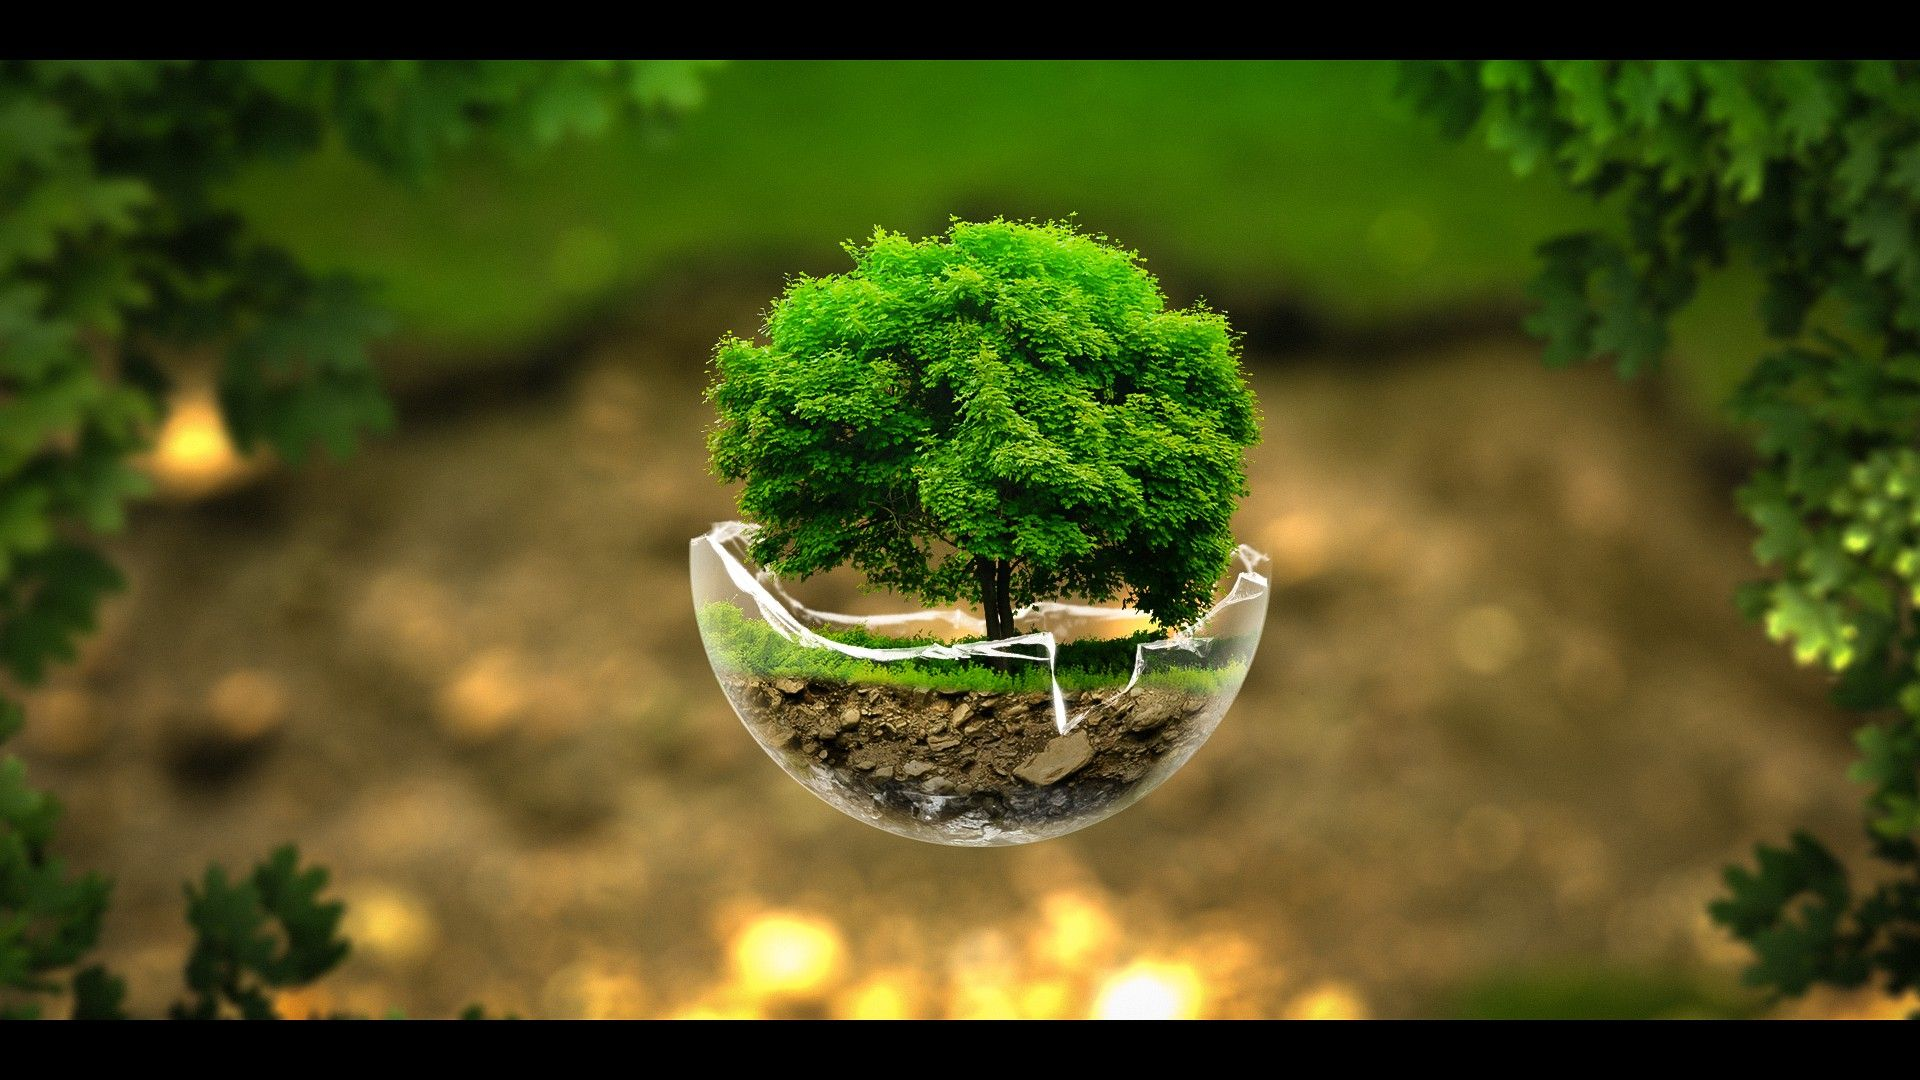 Nature Sphere HD Wallpaper FullHDWpp   Full HD Wallpapers 1920x1080 1920x1080